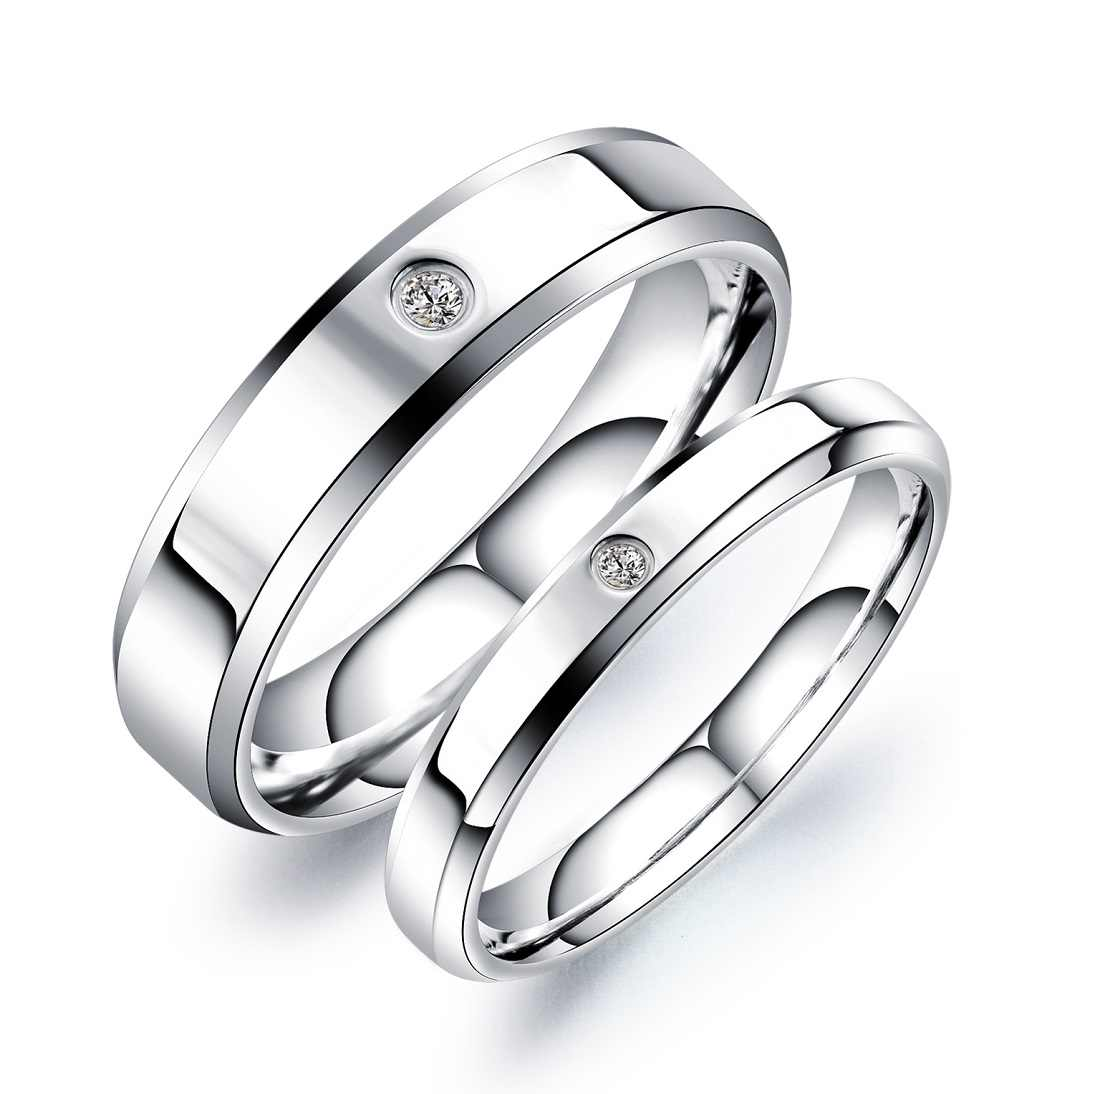 JHSL 3/5mm Stainless Steel Lovers Couple's Men Women Wedding Small Rings Valentine's Day Gift size 4 5 6 7 8 9 10 11